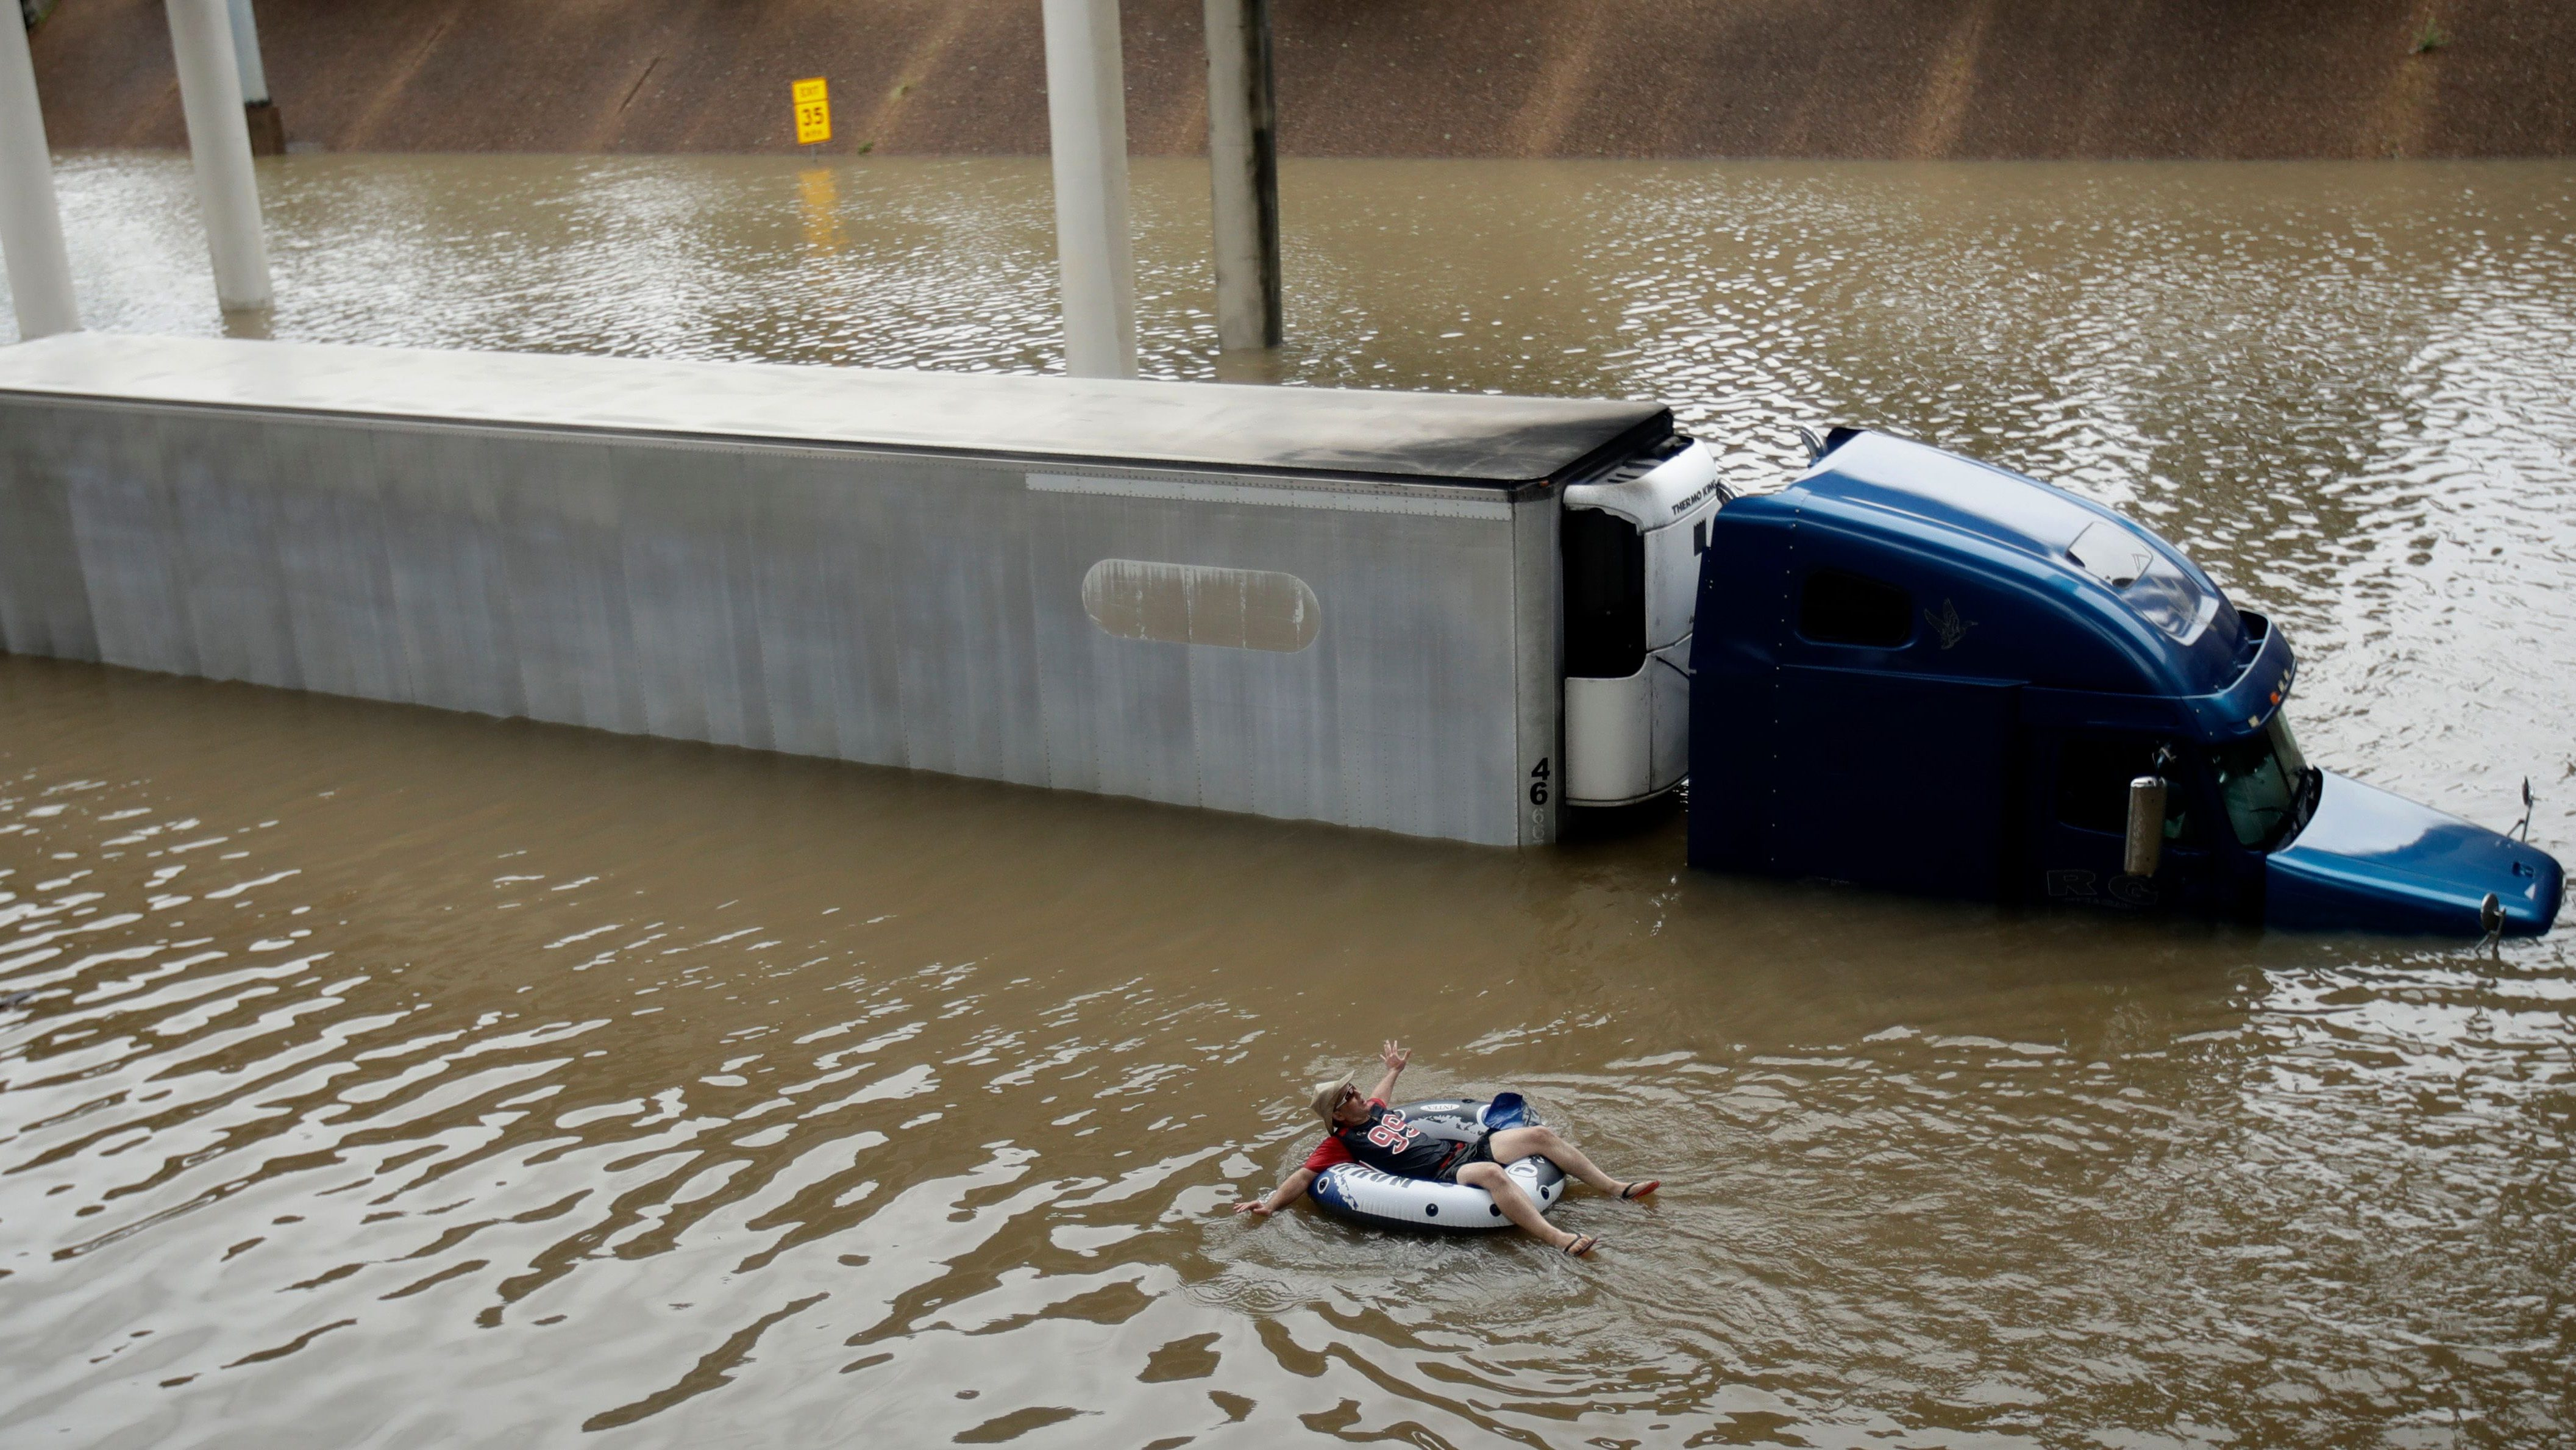 After helping the driver of the submerged truck get to safety, a man floats on the freeway flooded by Tropical Storm Harvey on Sunday, Aug. 27, 2017, near downtown Houston.  (AP Photo/Charlie Riedel)